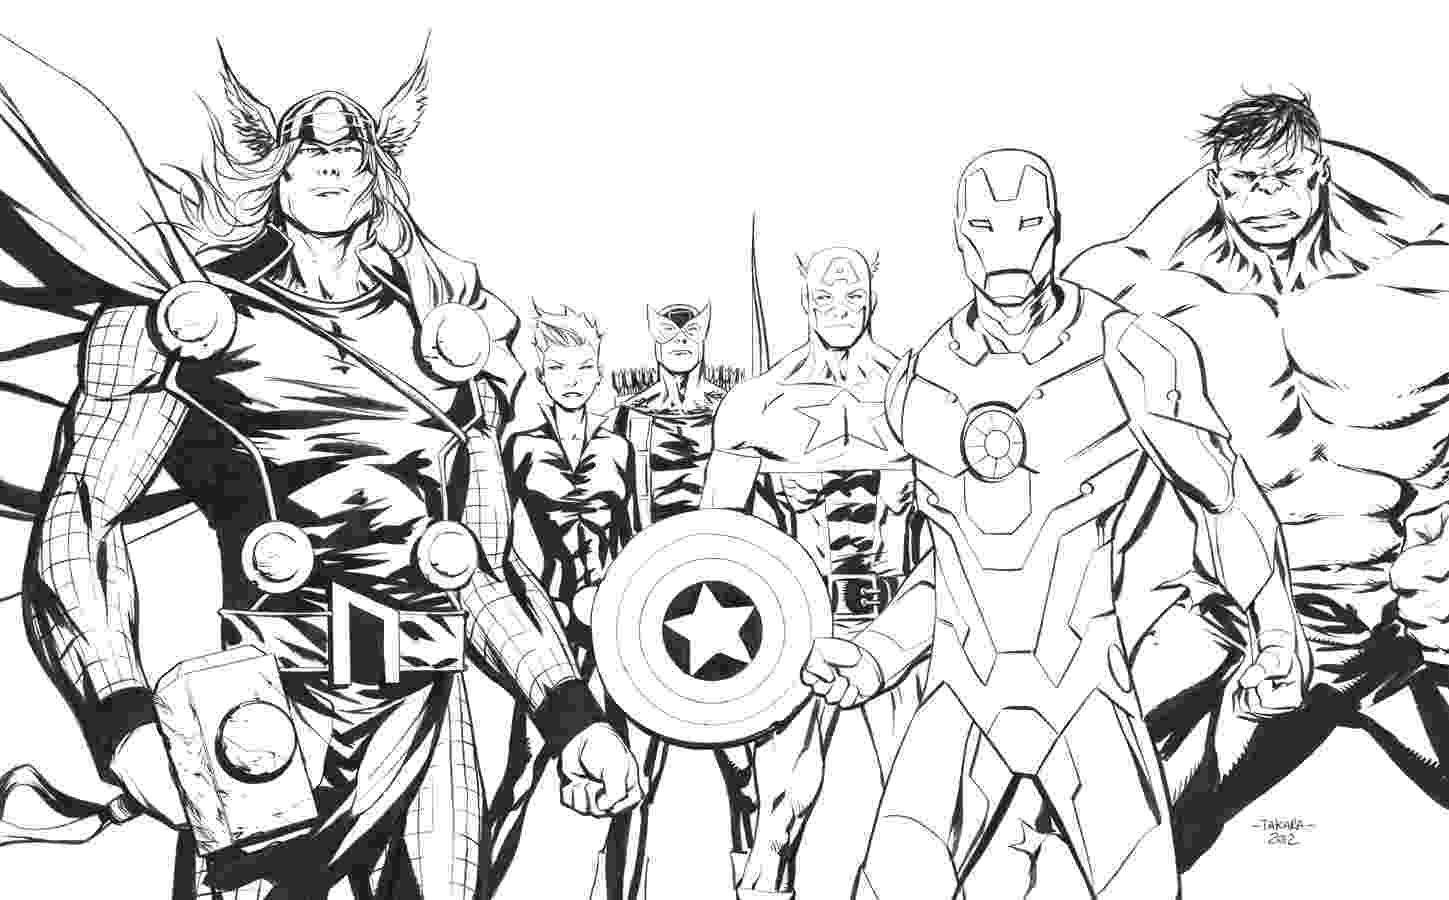 avengers colouring pages avengers coloring pages best coloring pages for kids avengers colouring pages